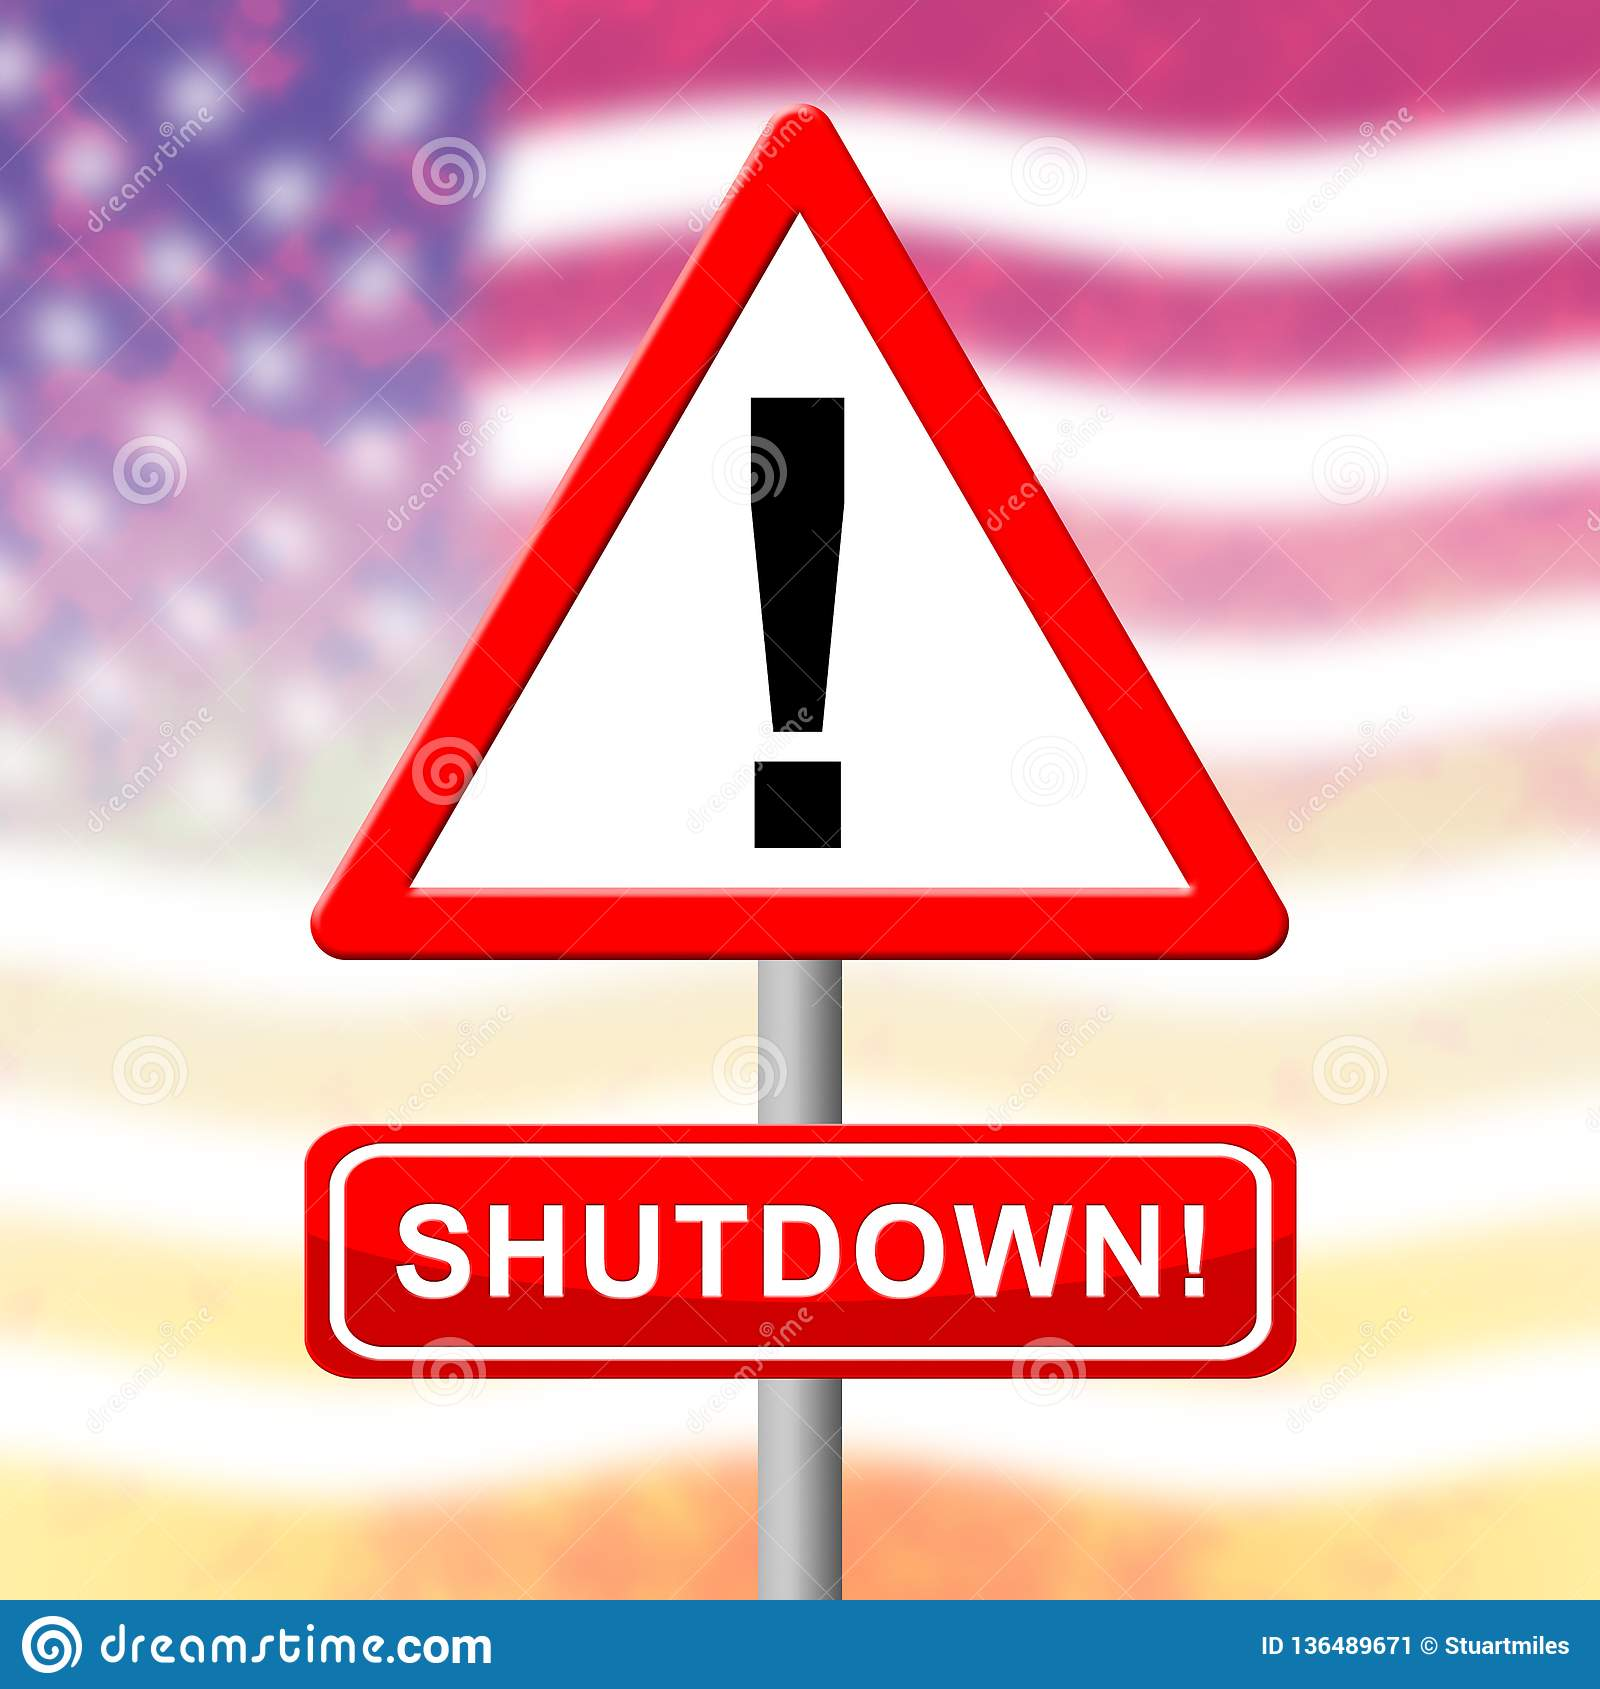 what does it mean if the federal government shuts down